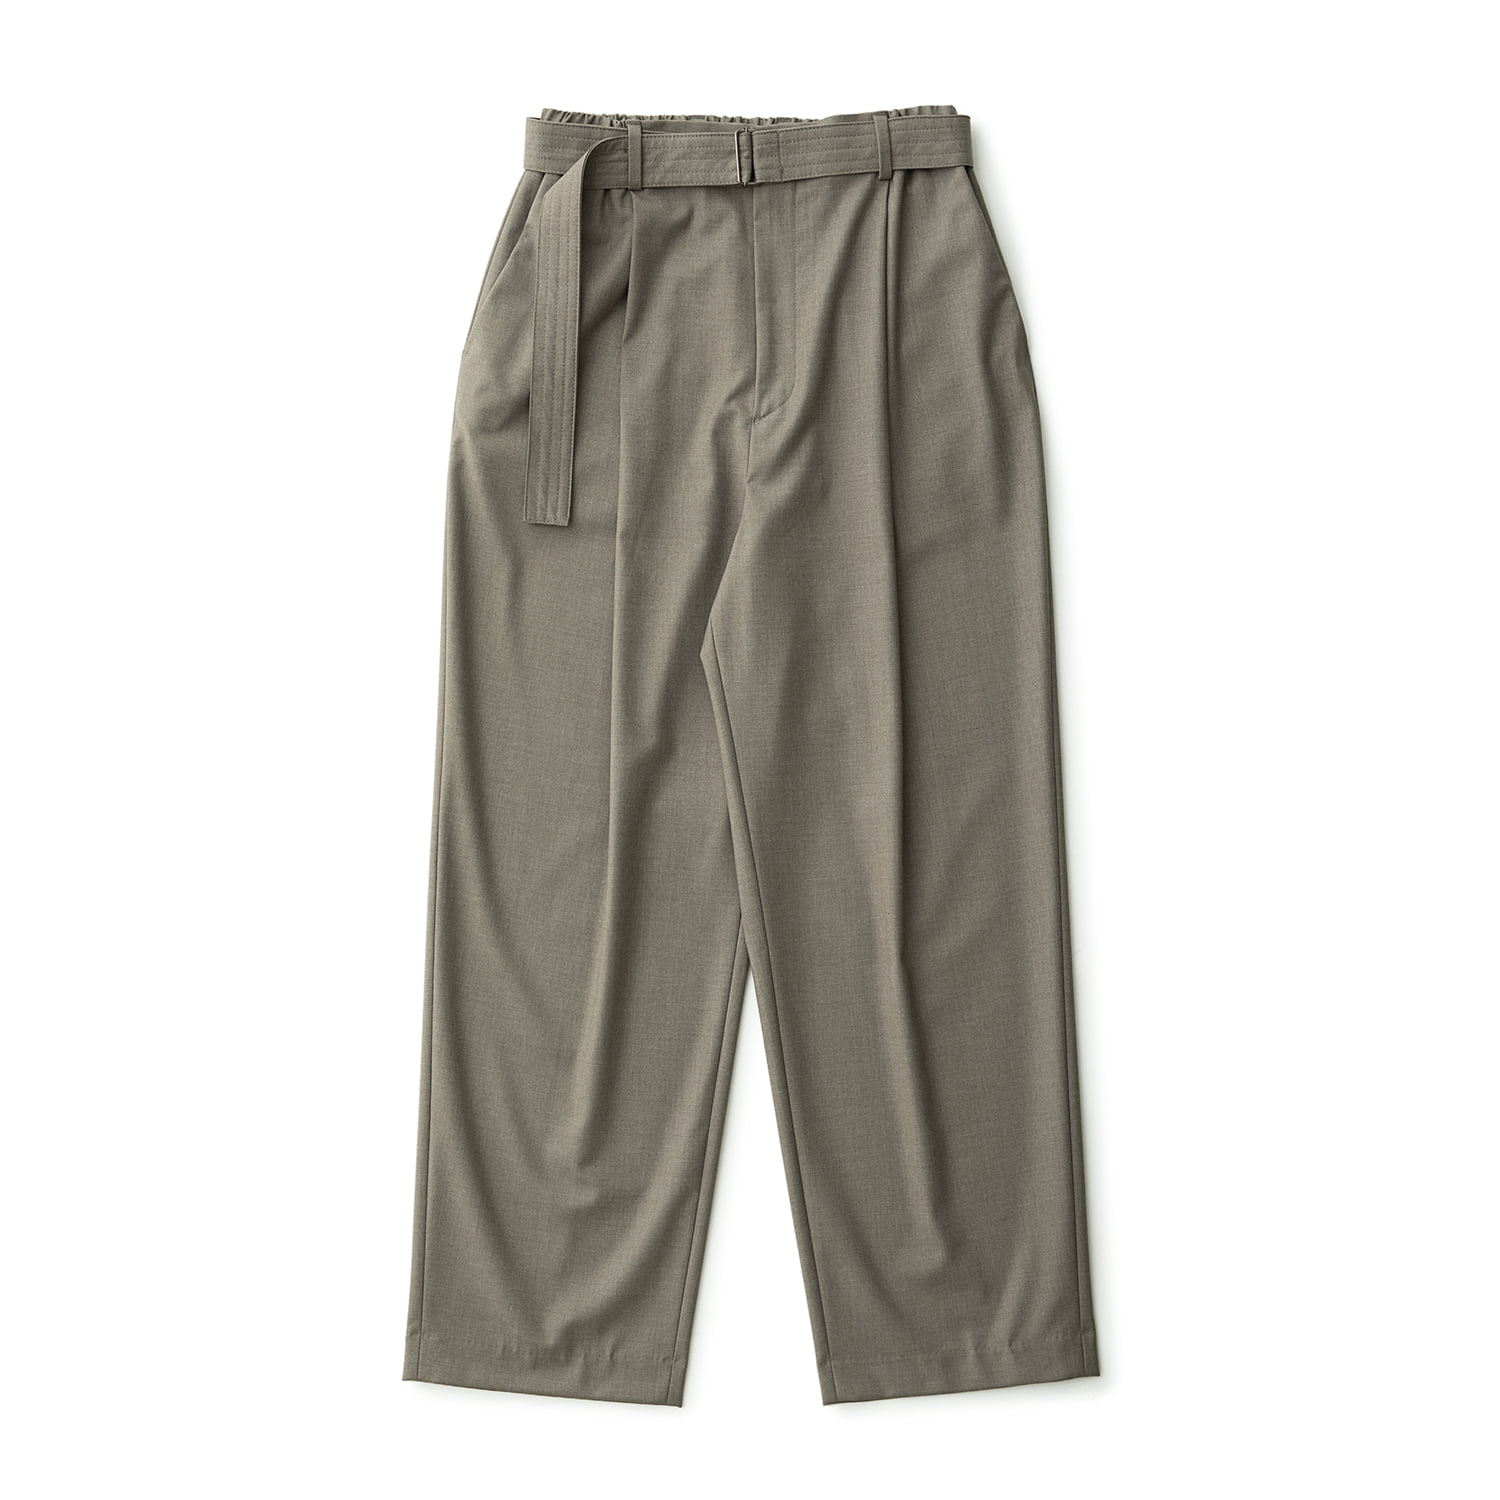 21SS Calm Banded Pants (Bamboo)